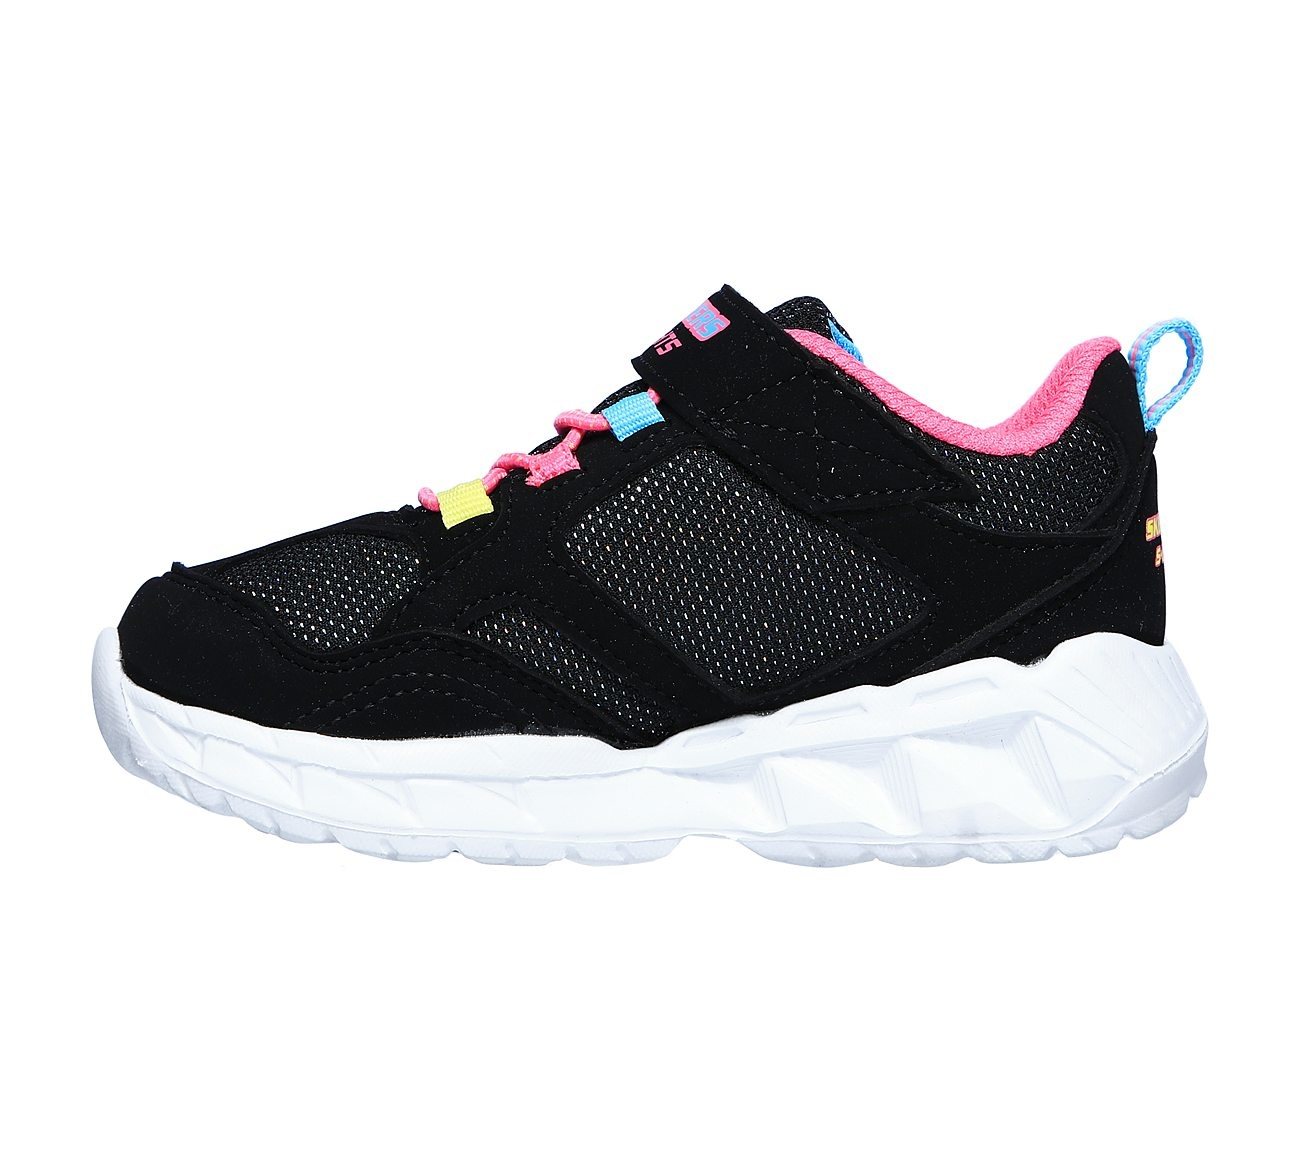 Skechers Expert Level black multi